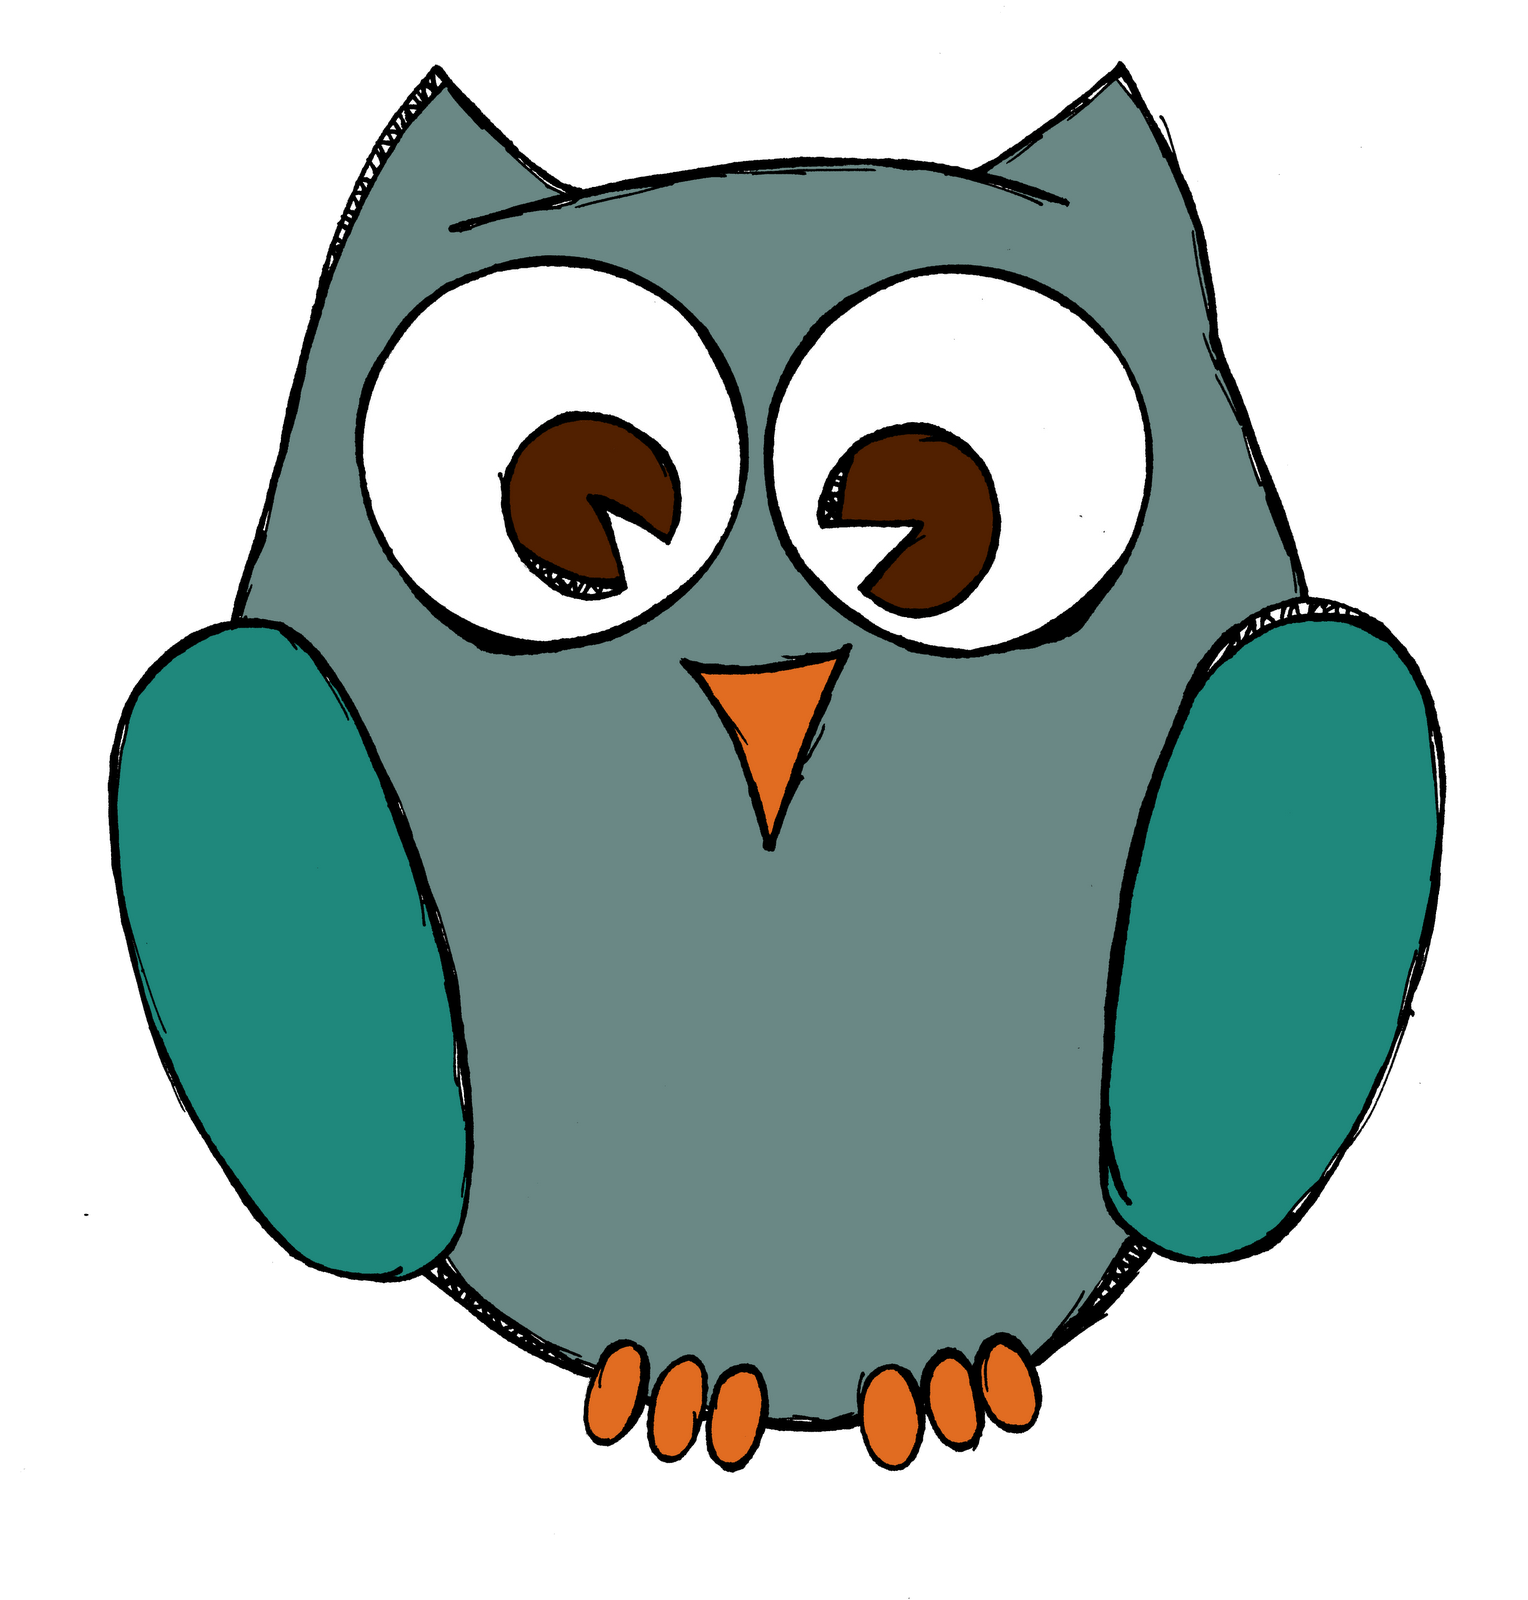 Simple Owl Drawings | Posted by Bri at 12:37 PM 9 comments: